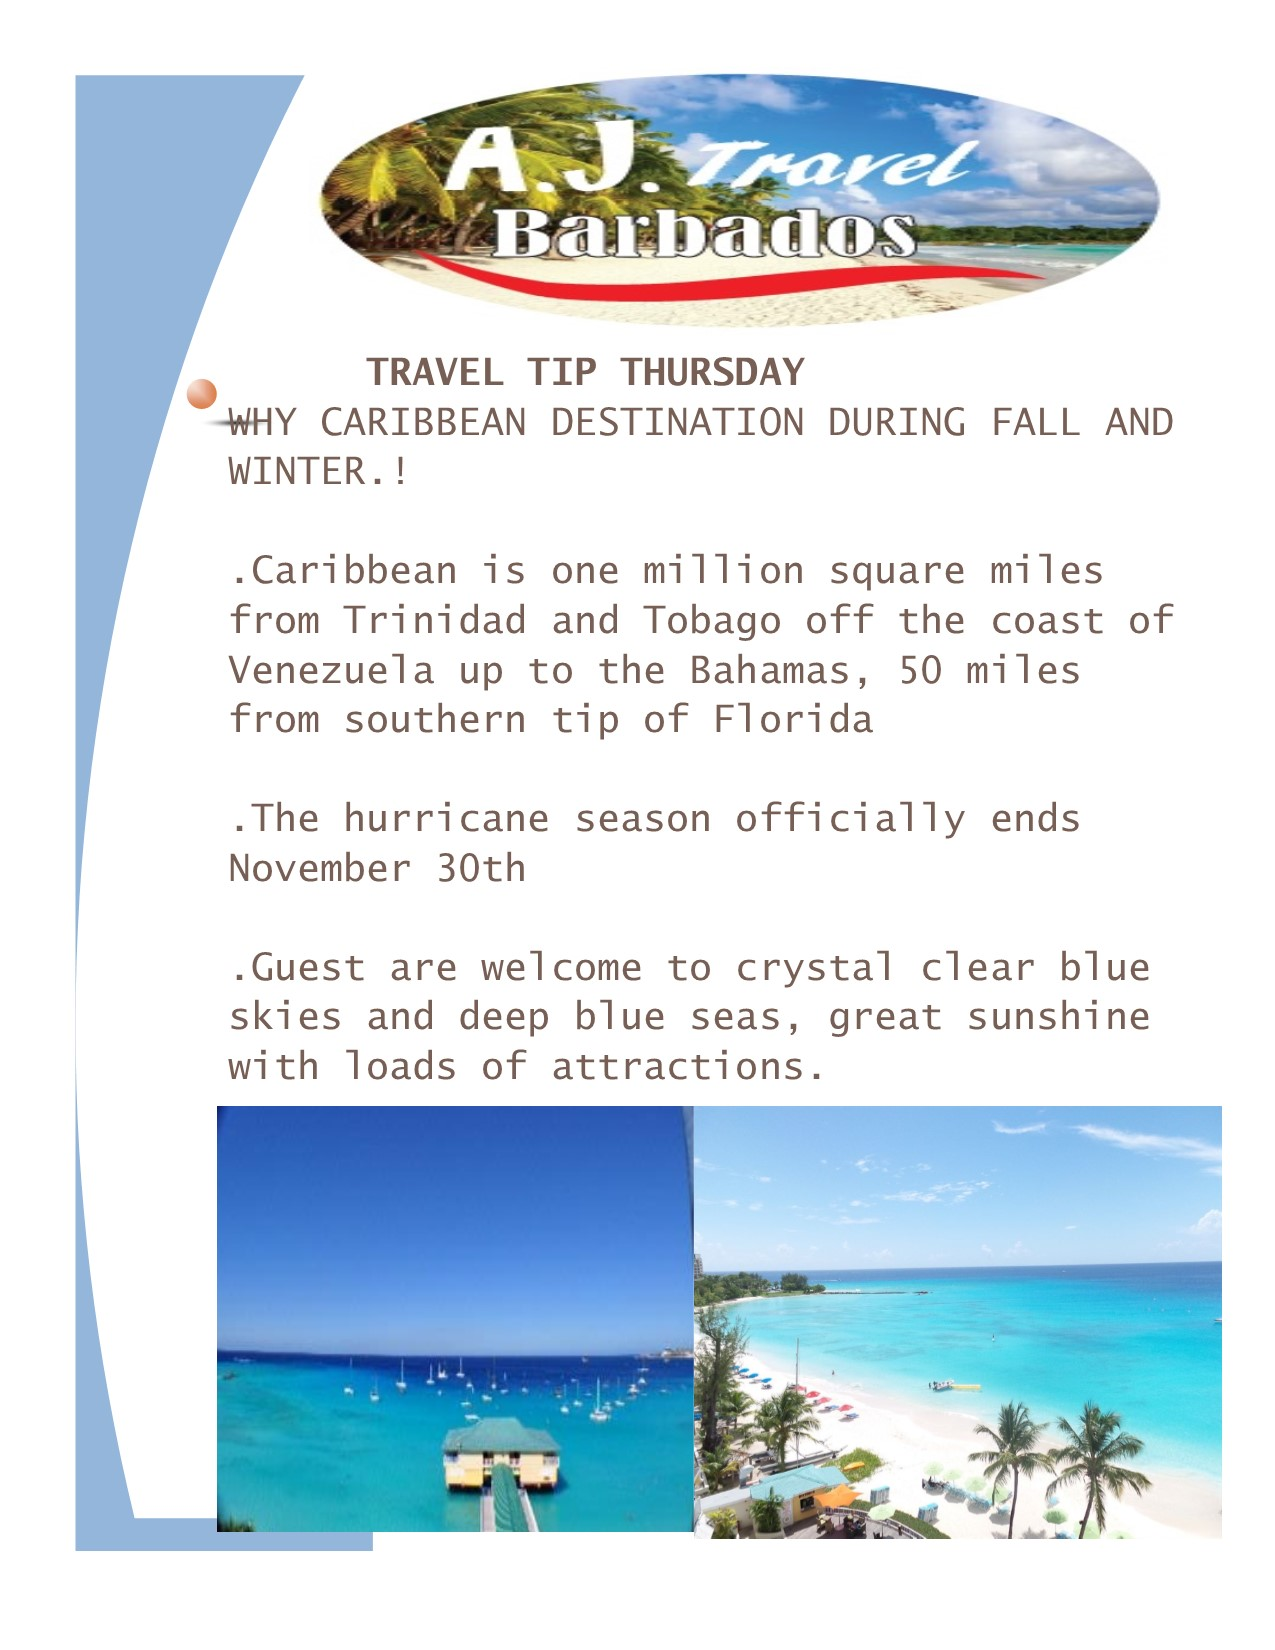 why Caribbean travel tip